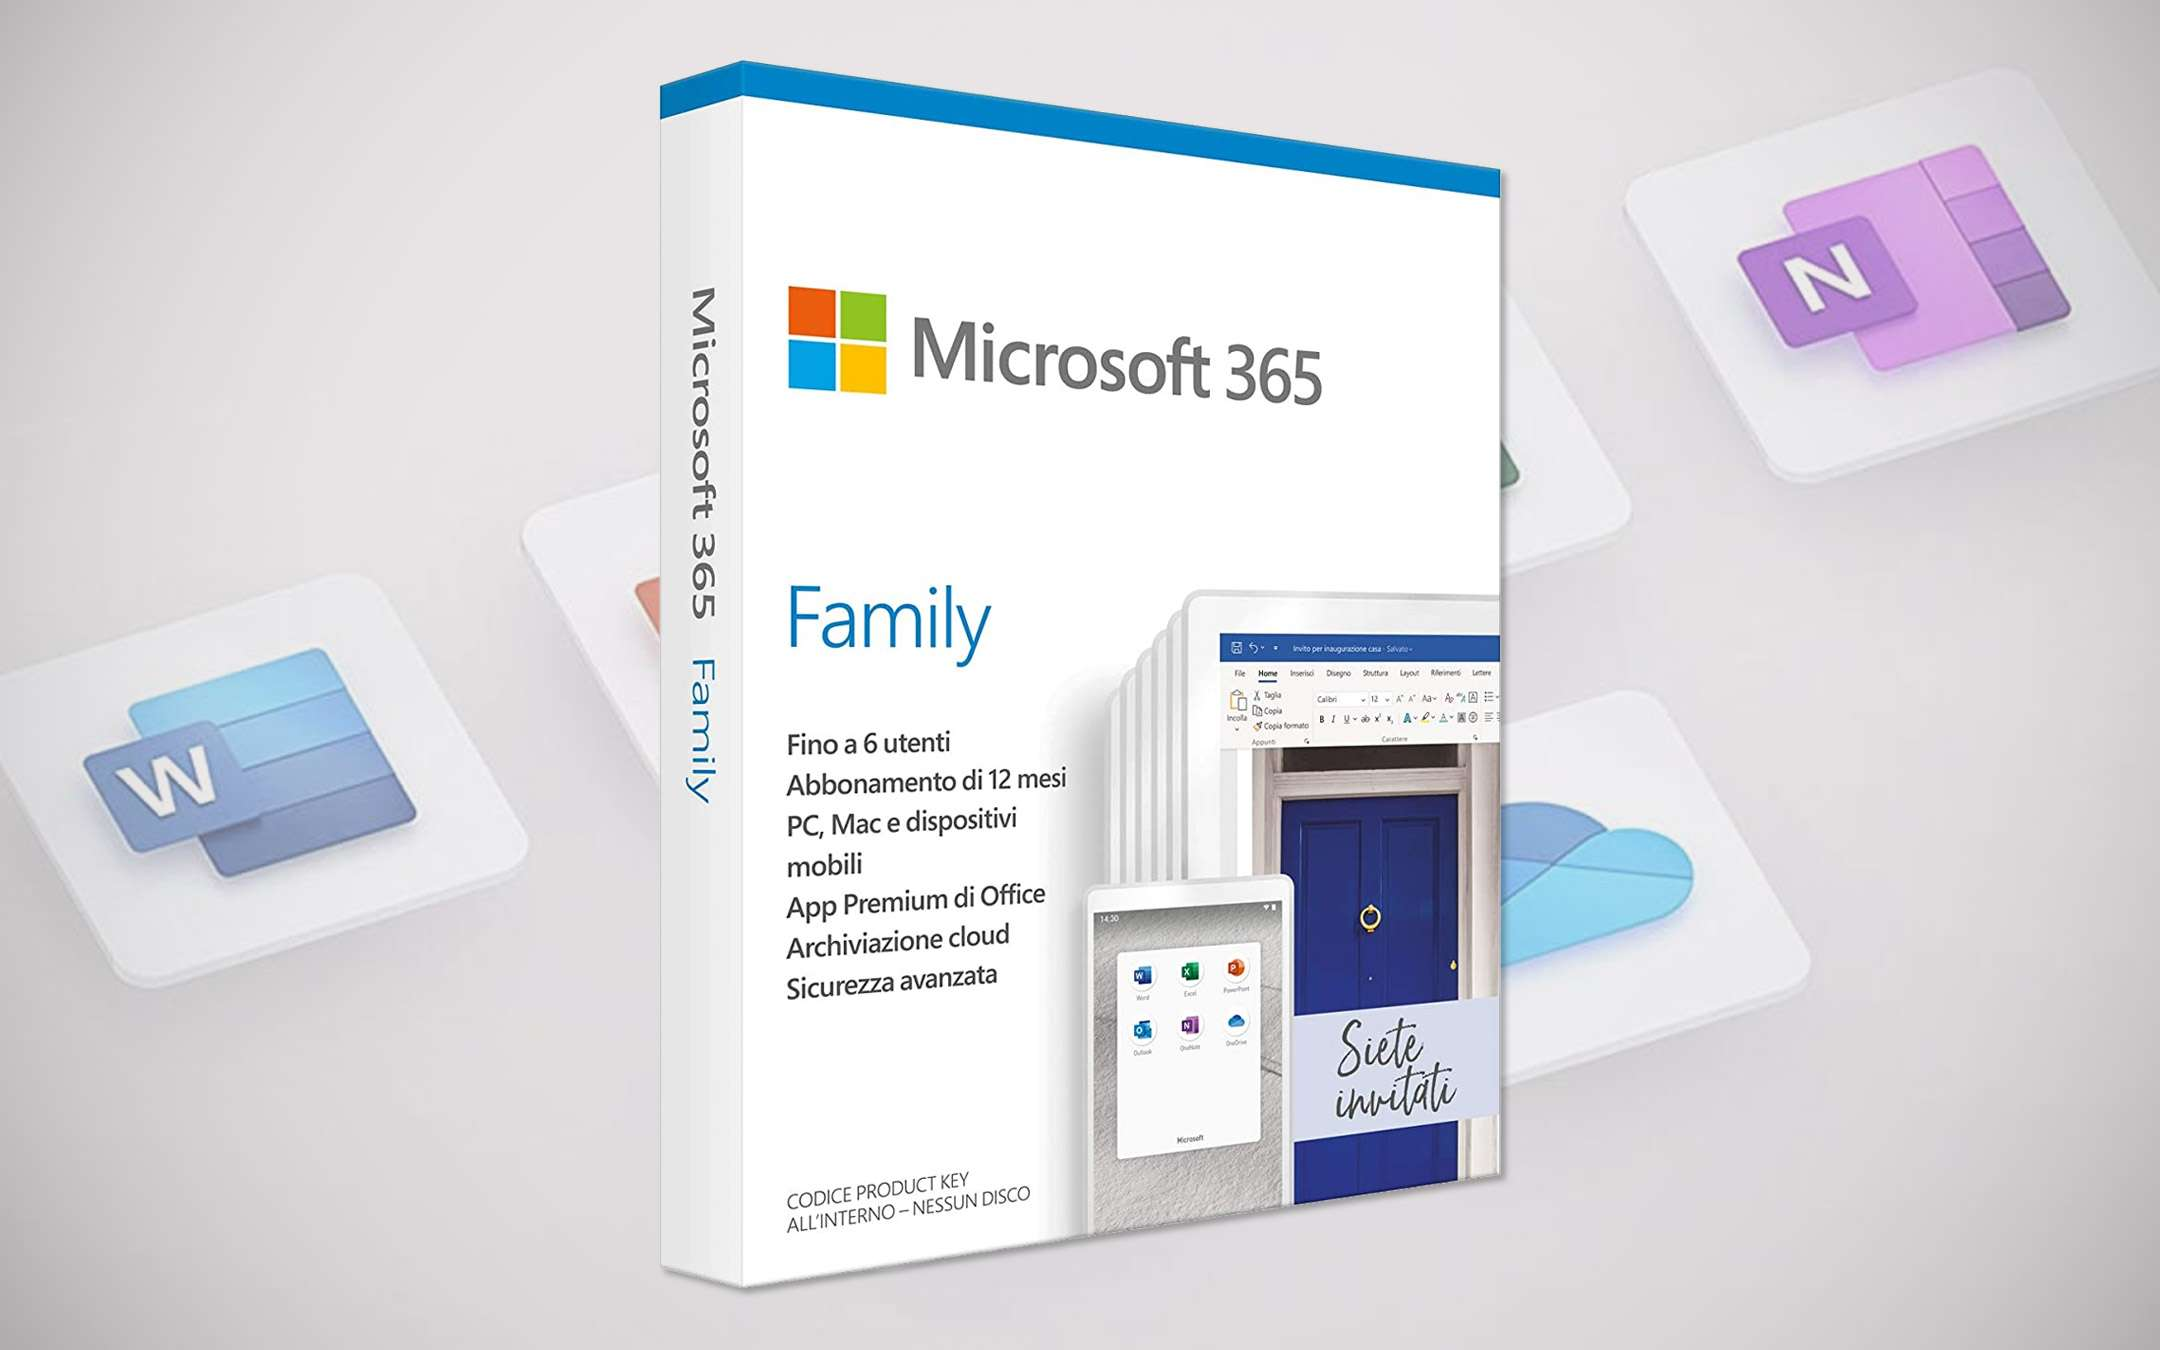 Microsoft 365 Family discounted today on Amazon